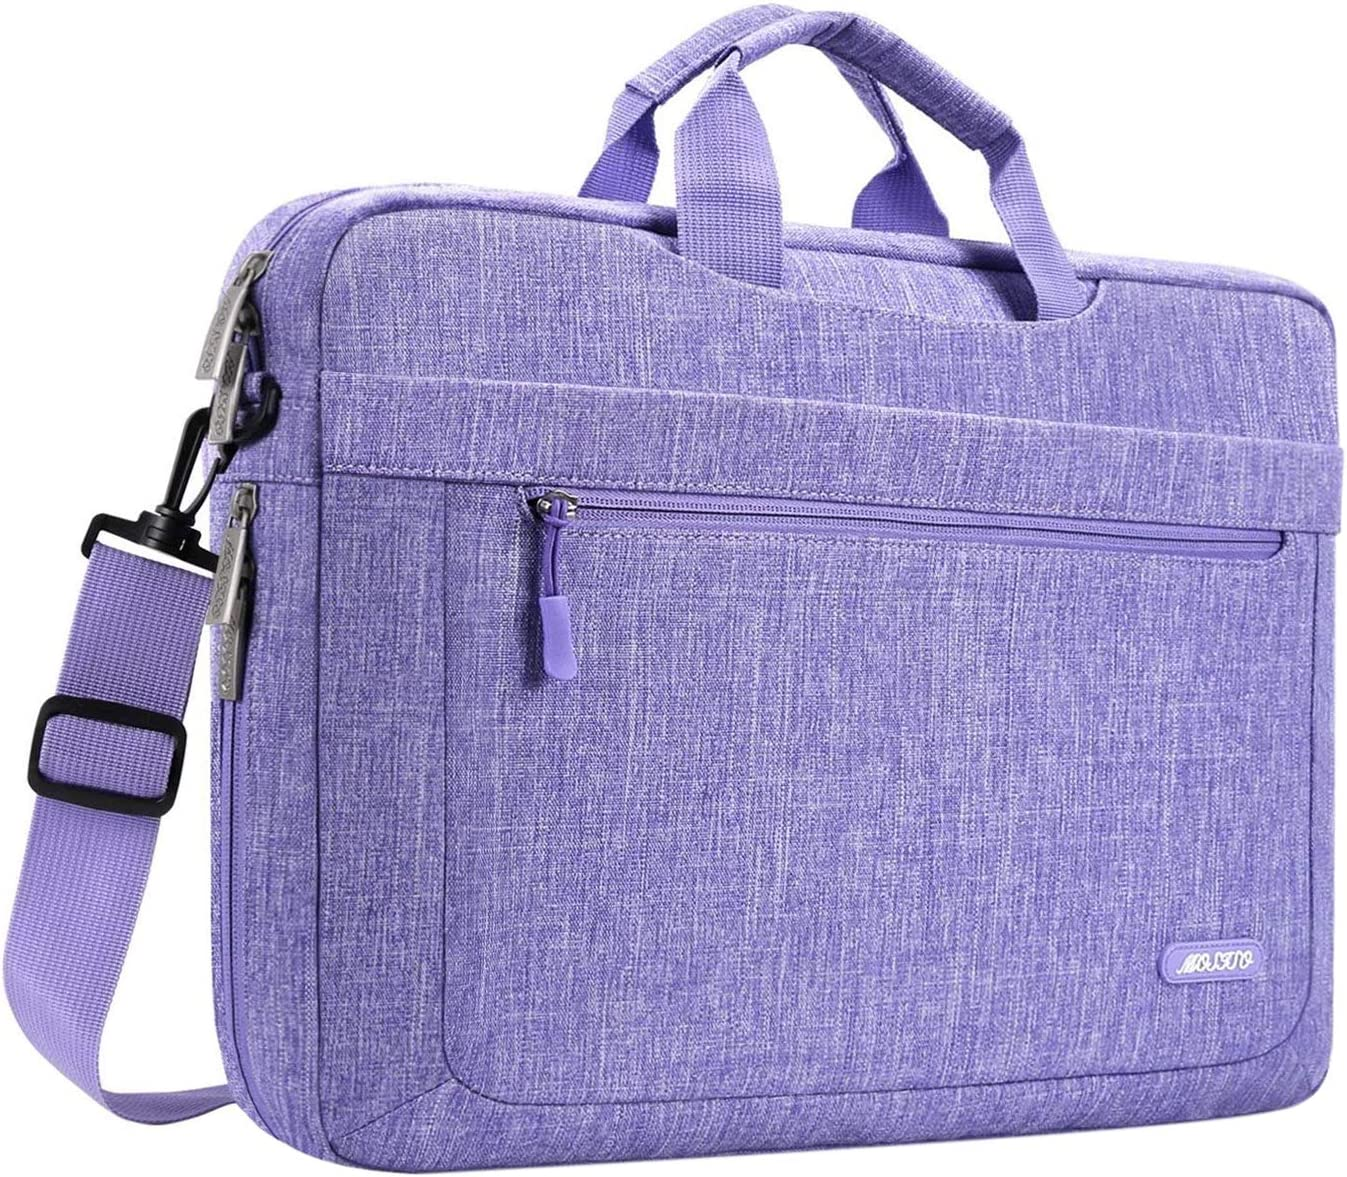 MOSISO Laptop Shoulder Bag Compatible with 13-13.3 inch MacBook Pro, MacBook Air, Notebook Computer, Polyester Messenger Carrying Briefcase Sleeve with Adjustable Depth at Bottom, Purple